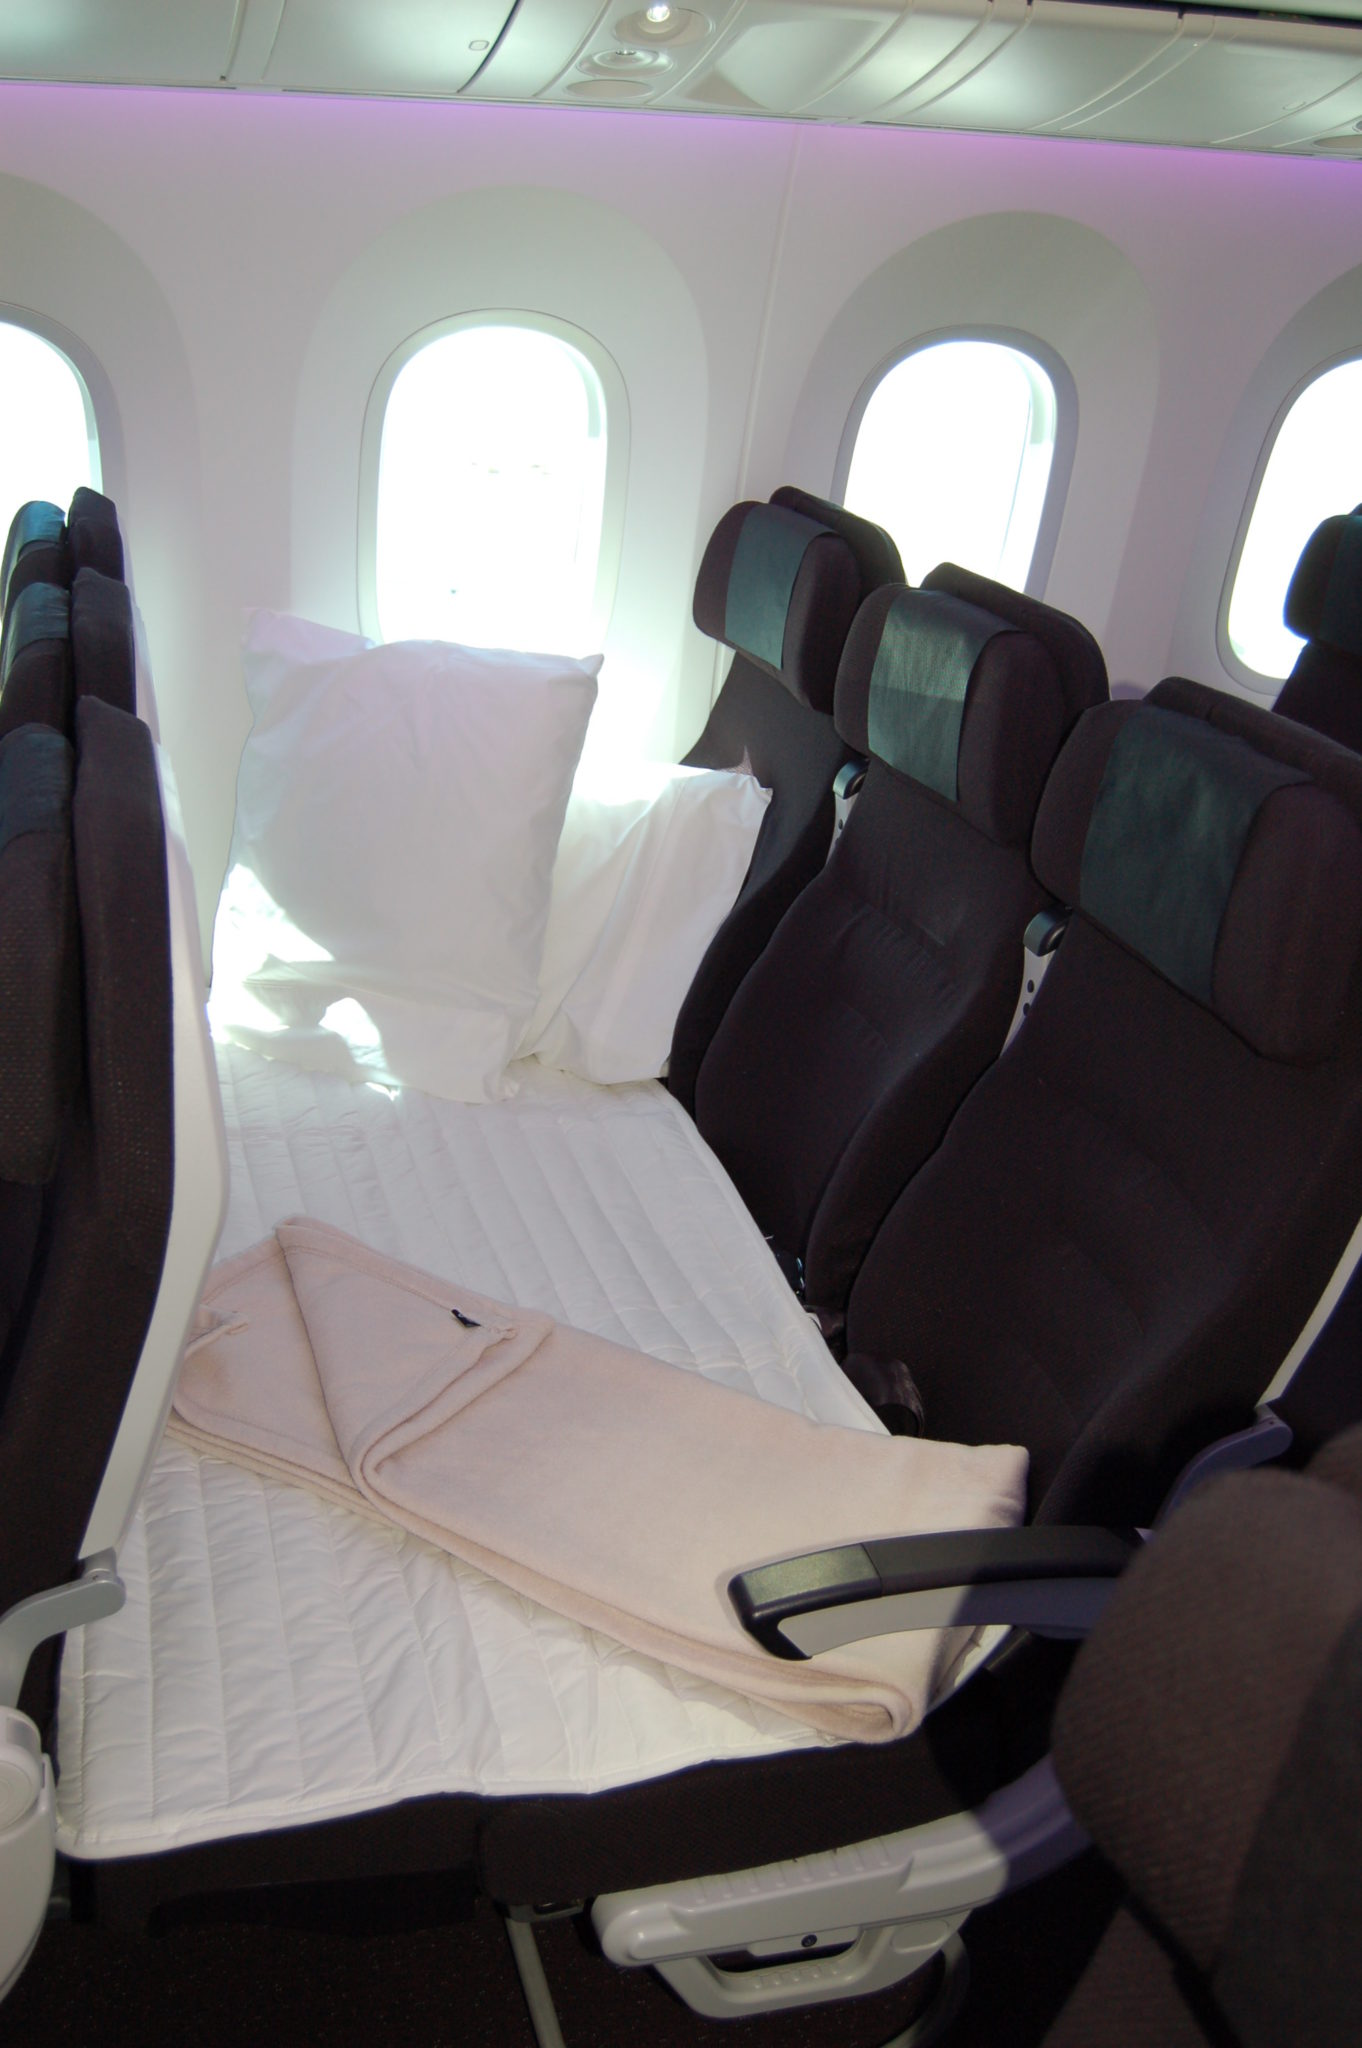 Air New Zealand offers an option in coach to buy all three seats, which permits a bed to be created. Photo by Scott Hamilton.